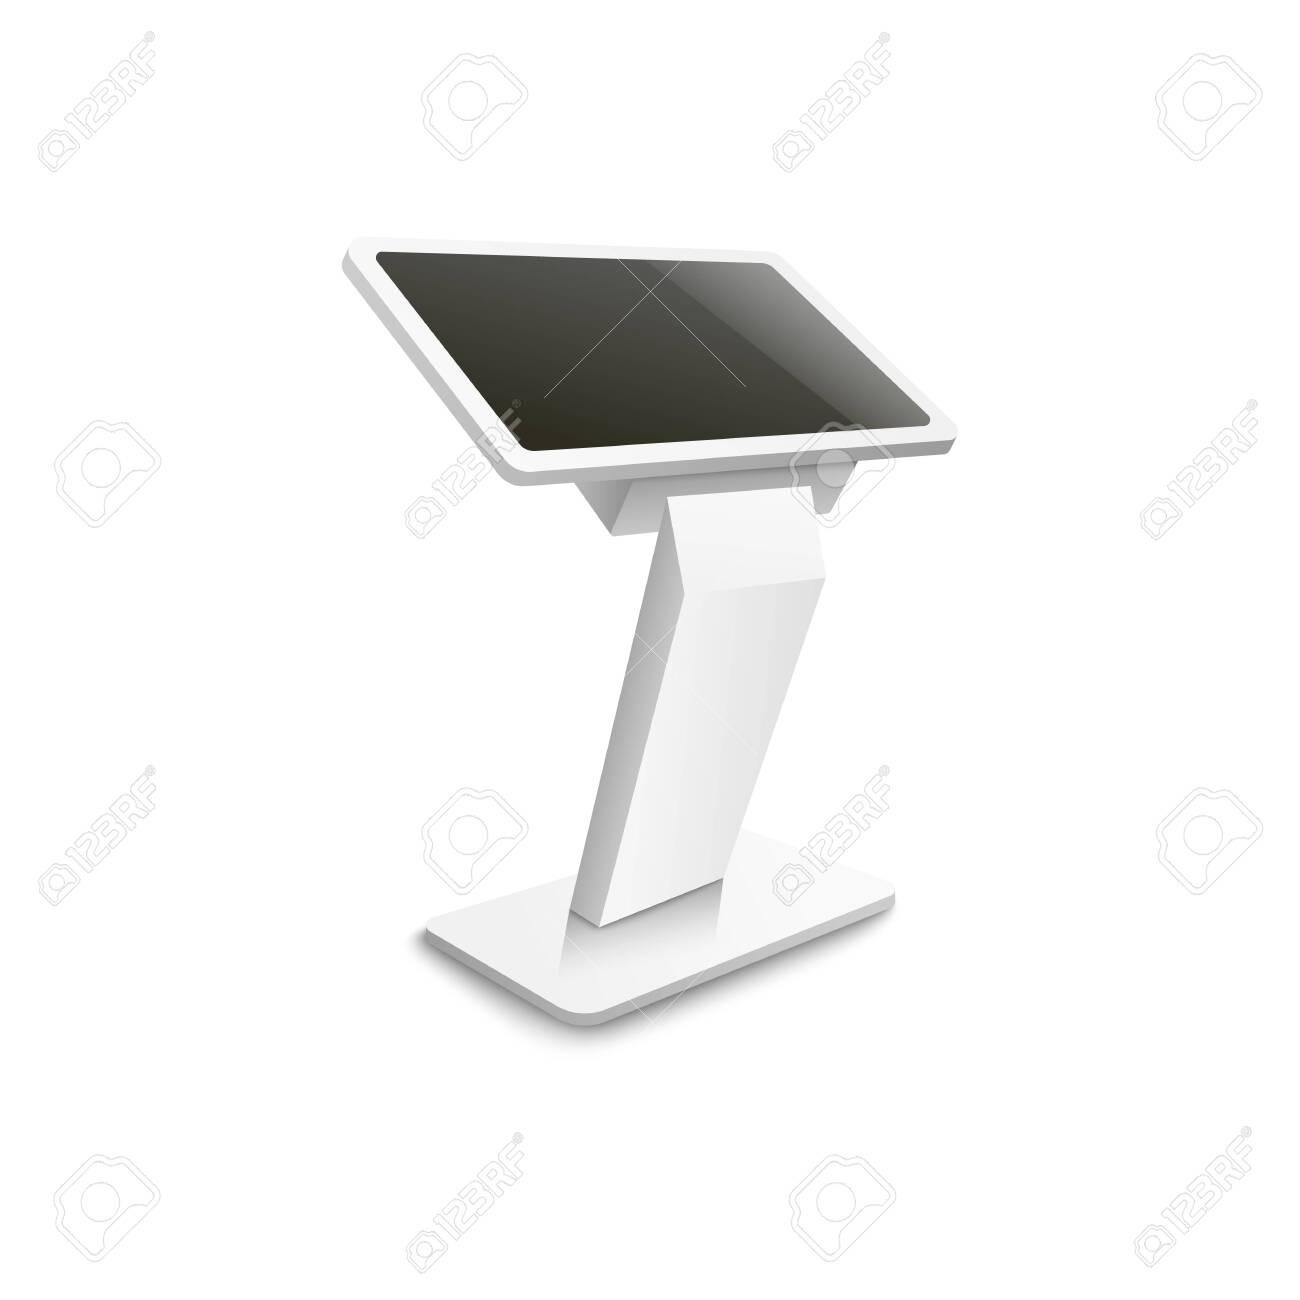 Advertising or information terminal stand with blank screen, 3d realistic vector mockup illustration isolated on white background. Side view of interactive panel template. - 135193765